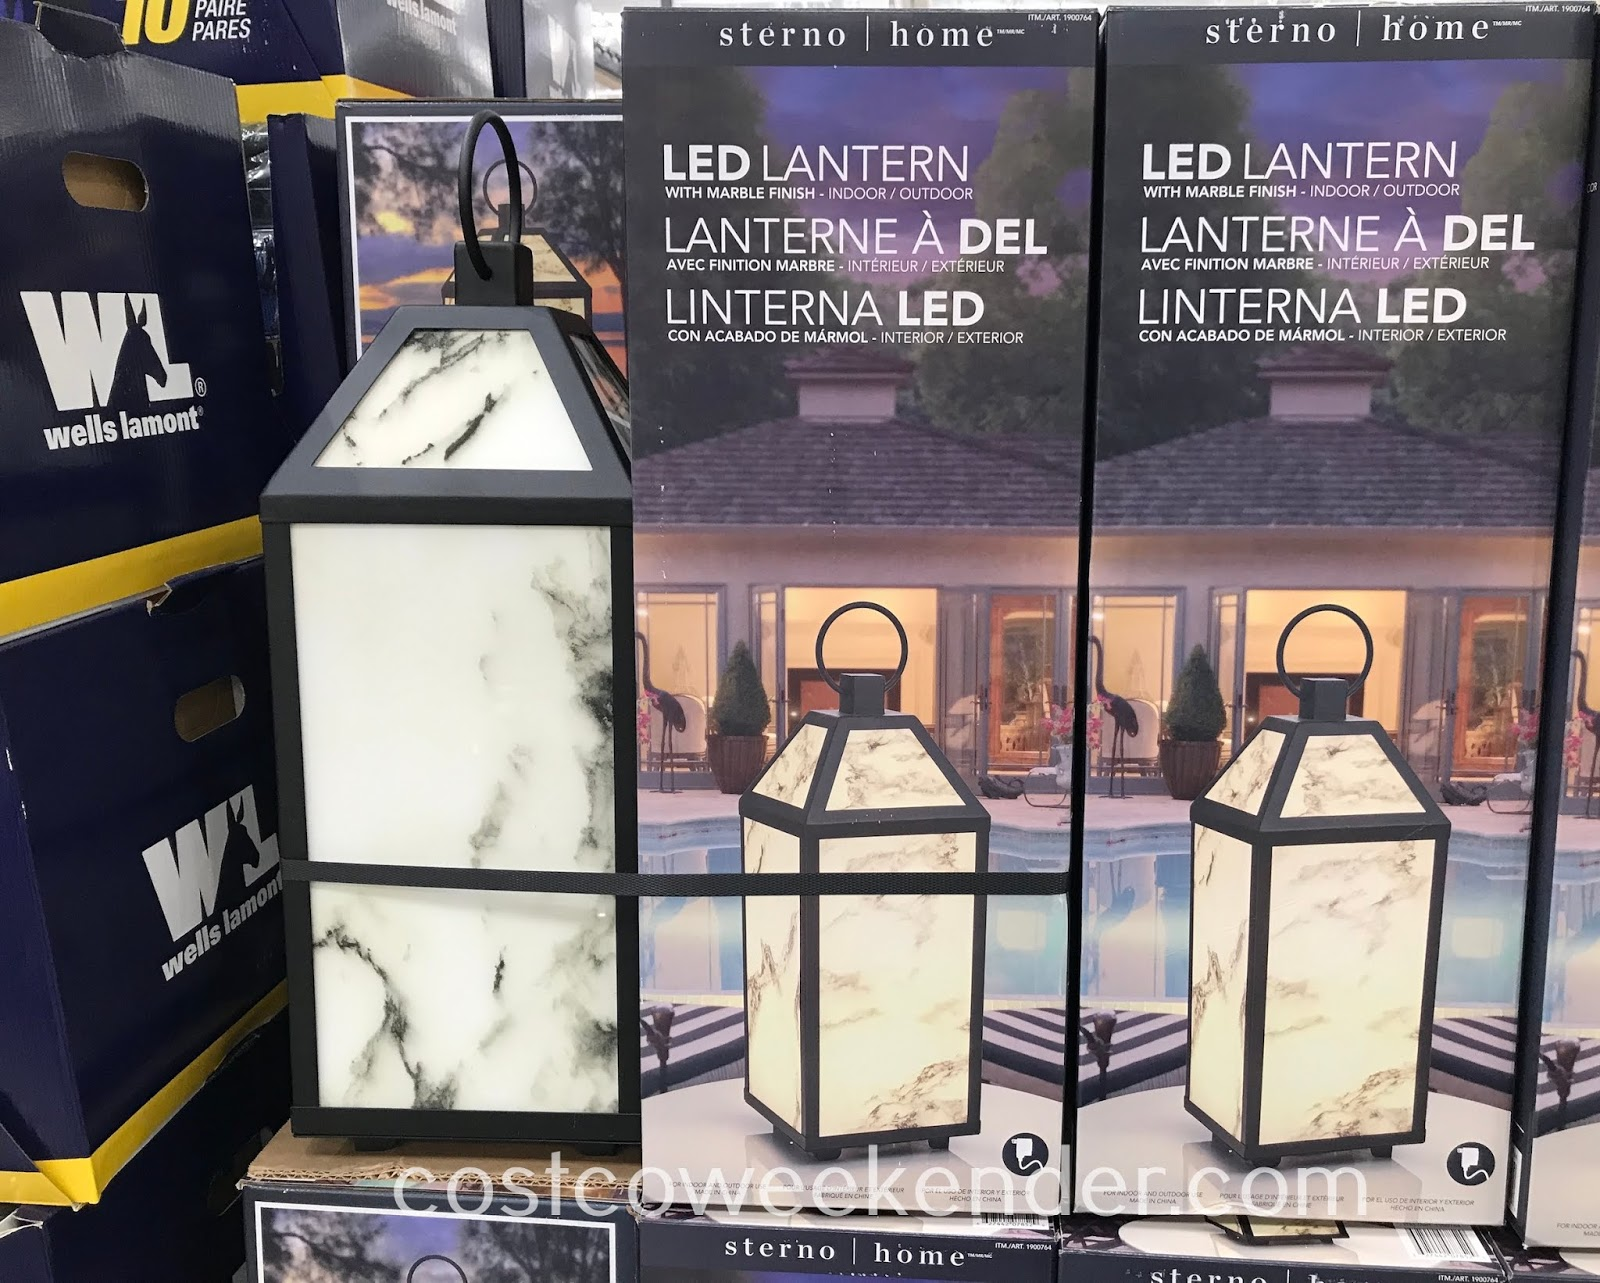 Ensure your backyard or outdoor deck is well lit with the Sterno Home LED Lantern with Marble Finish